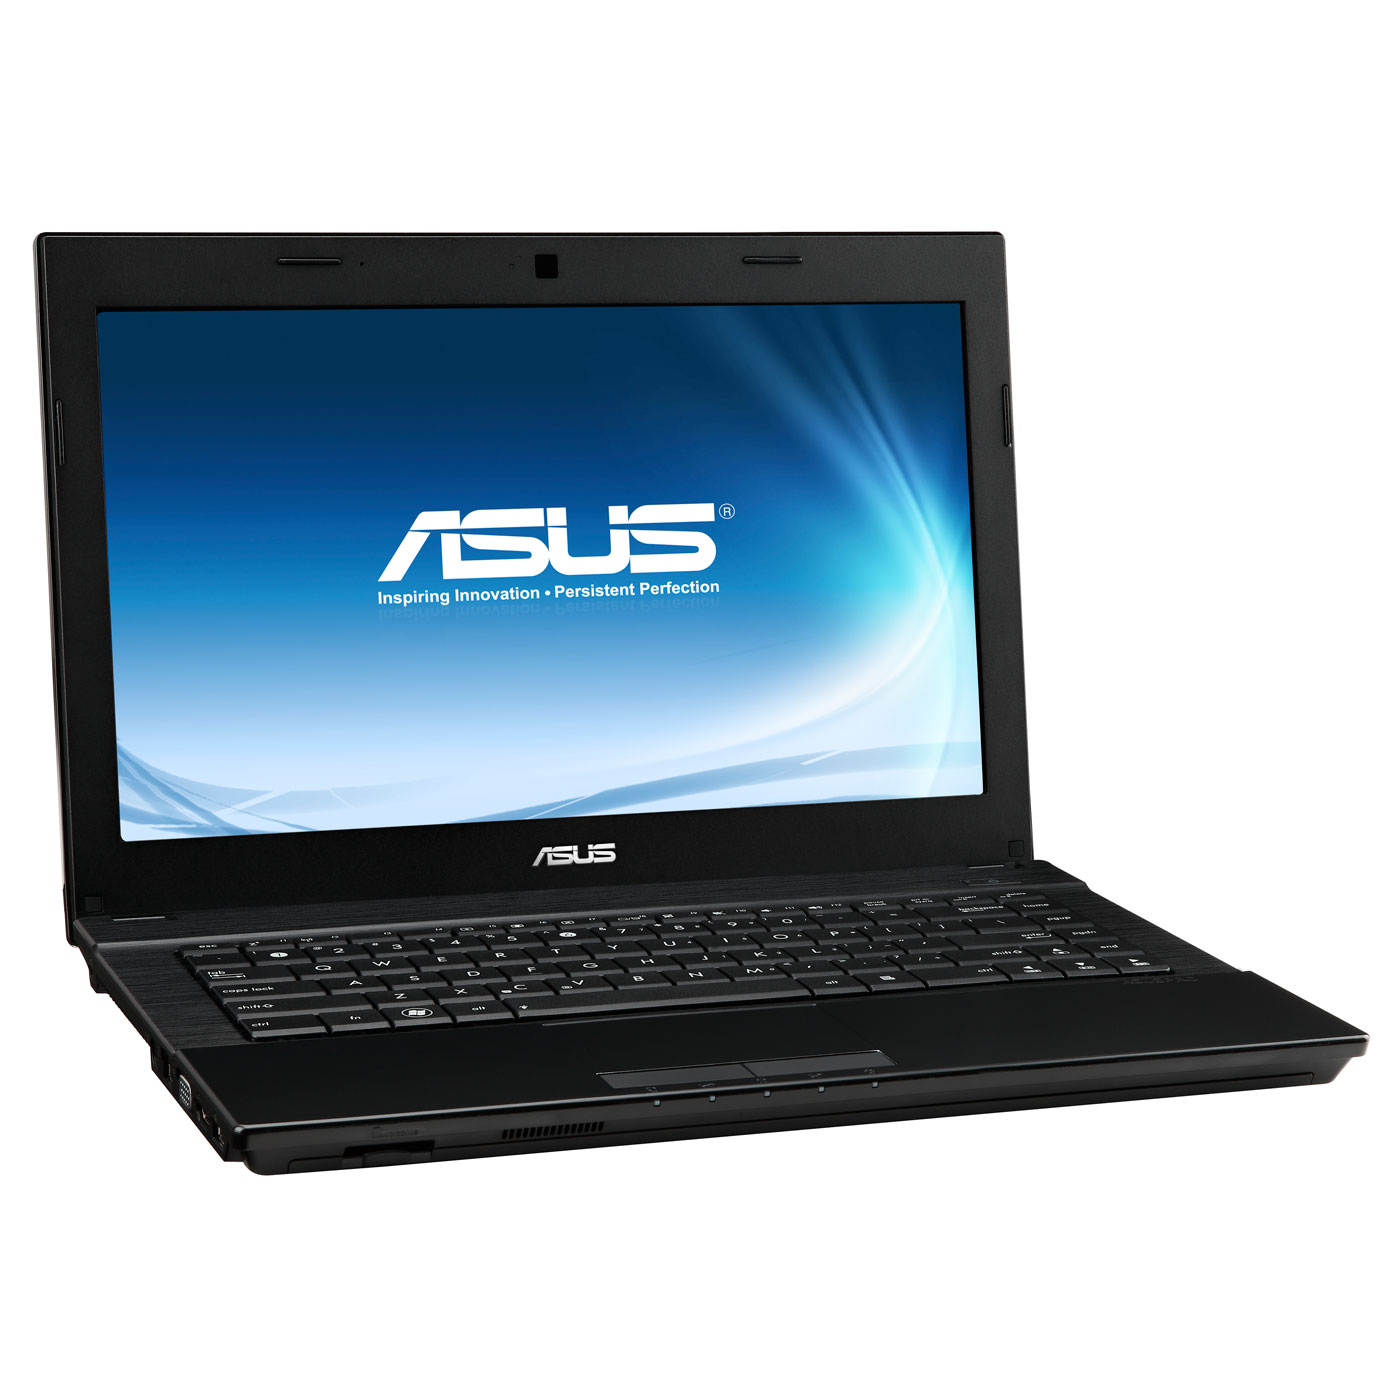 asus p43e vo022x pc portable asus sur. Black Bedroom Furniture Sets. Home Design Ideas